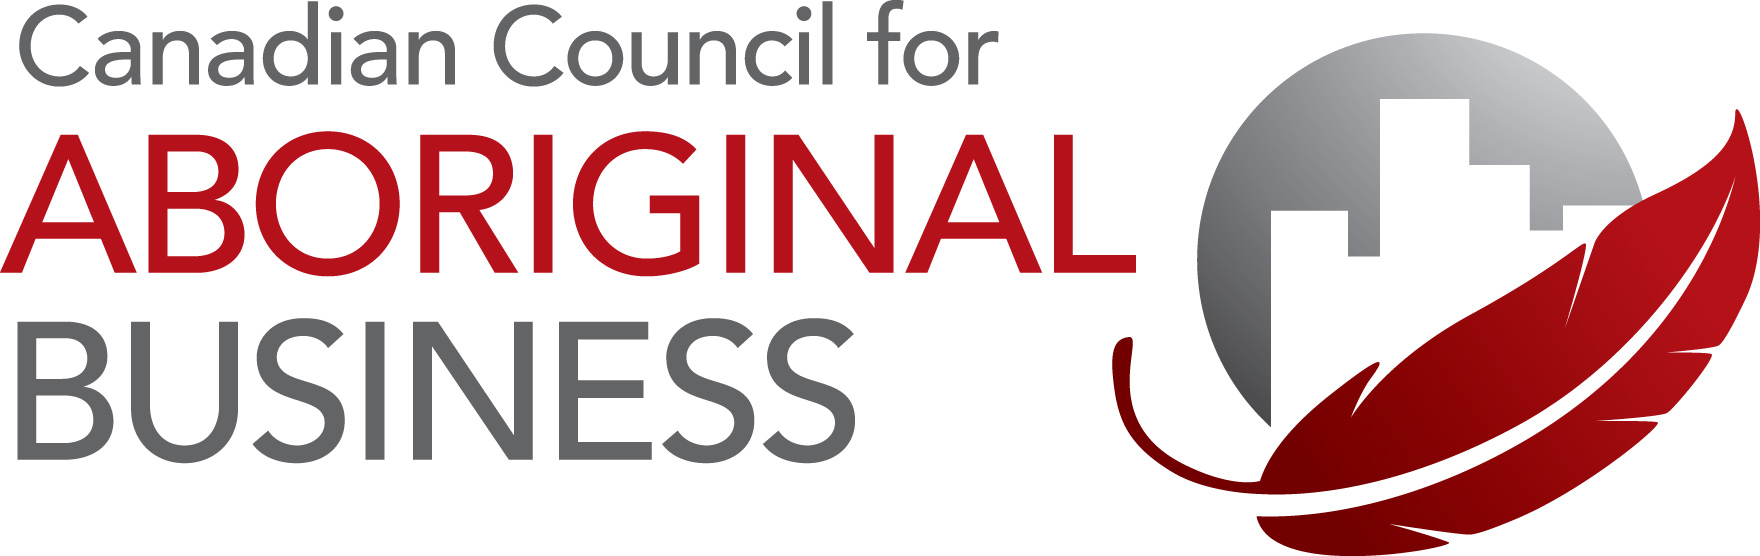 Logo of Canadian Council for Aboriginal Business